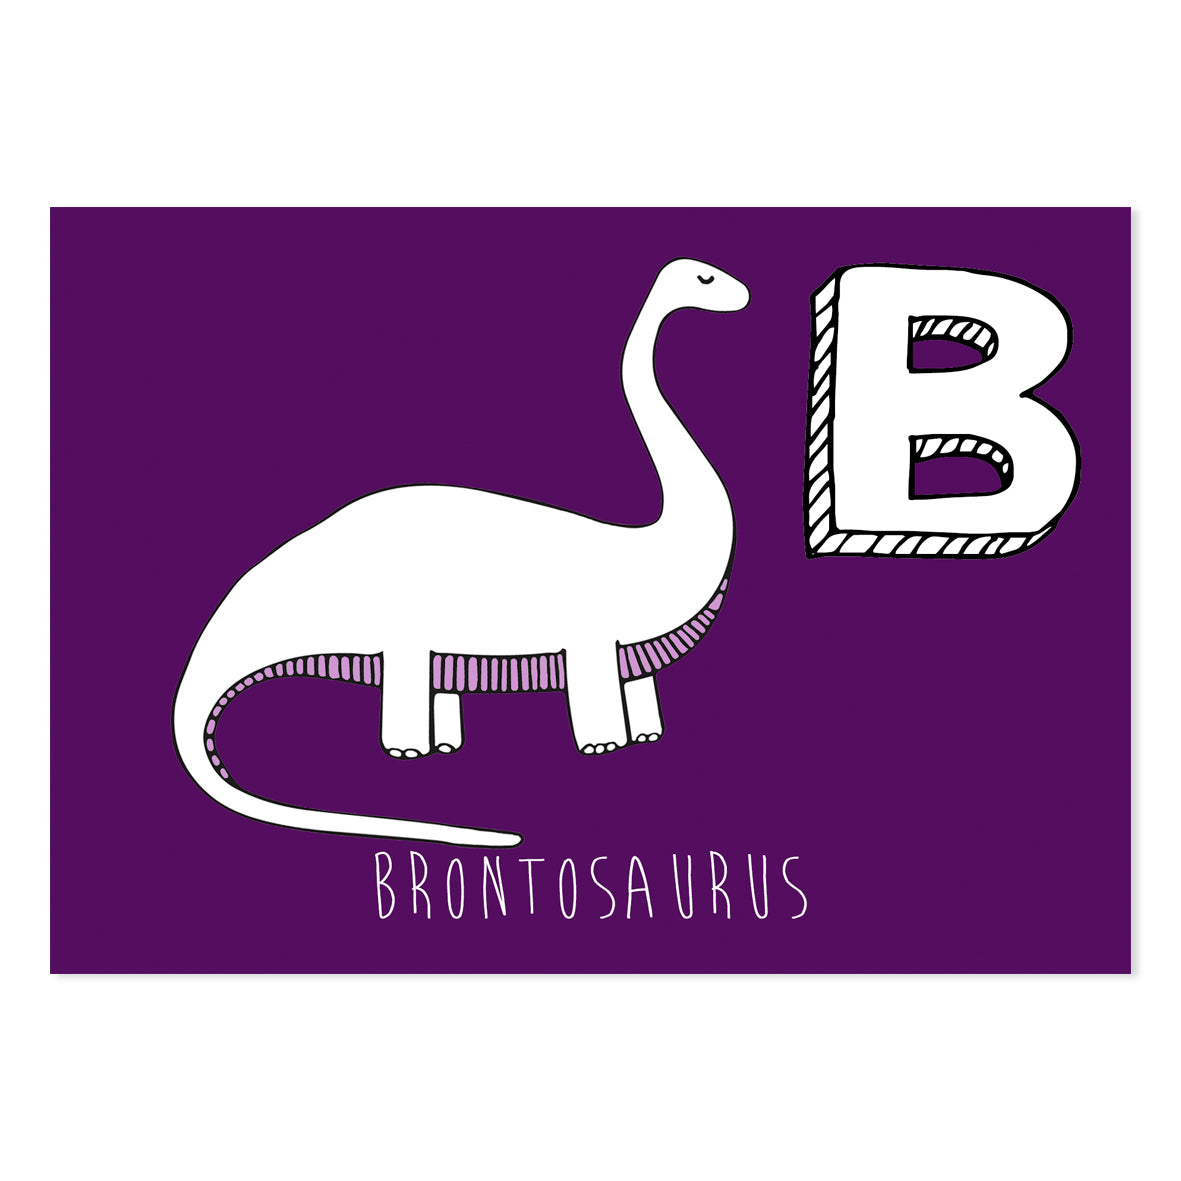 Purple postcard featuring the letter B for brontosaurus